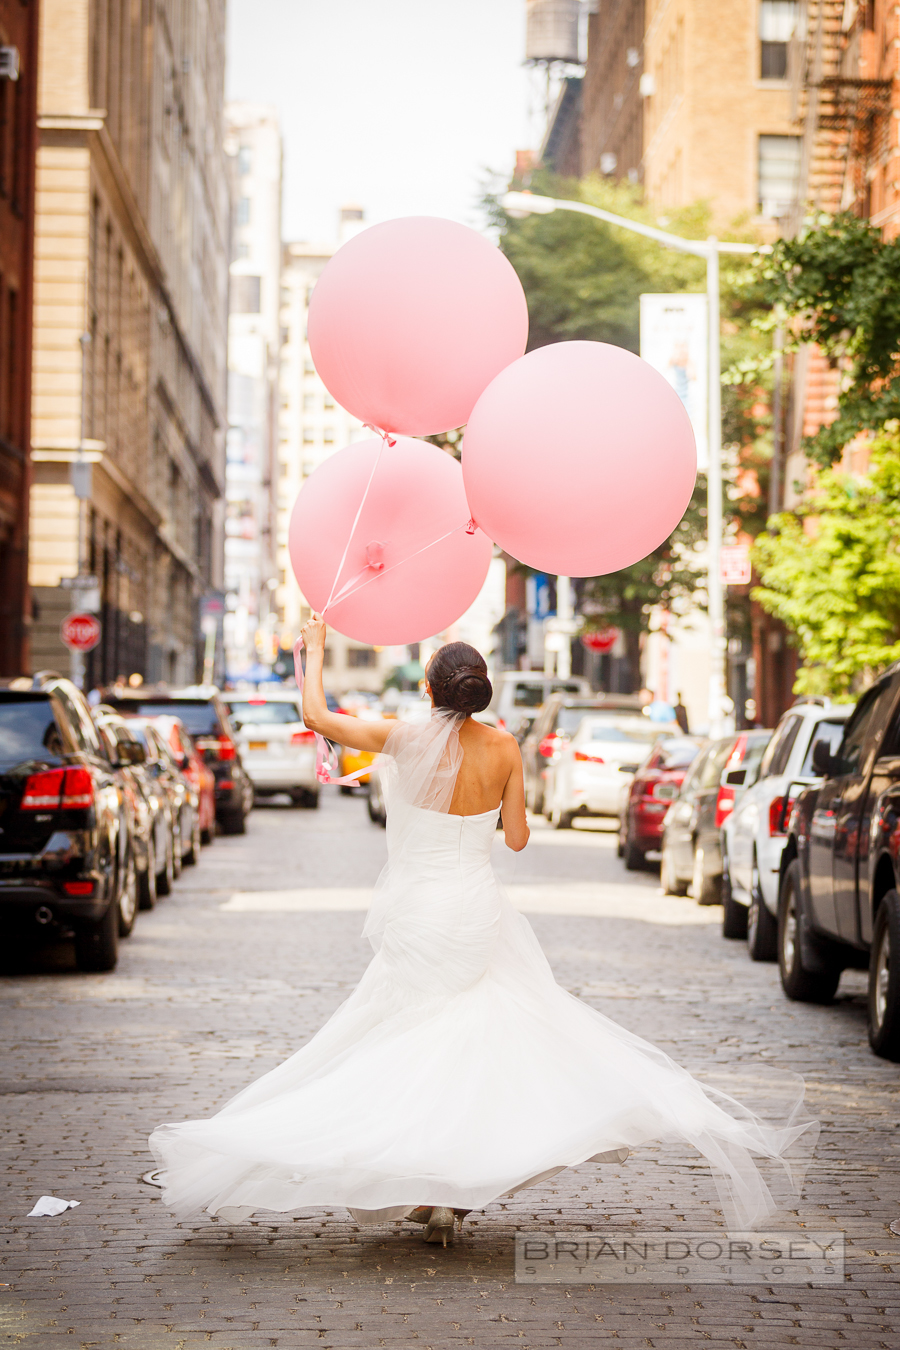 isola nomo soho hotel wedding brian dorsey studios ang weddings and events-12.jpg